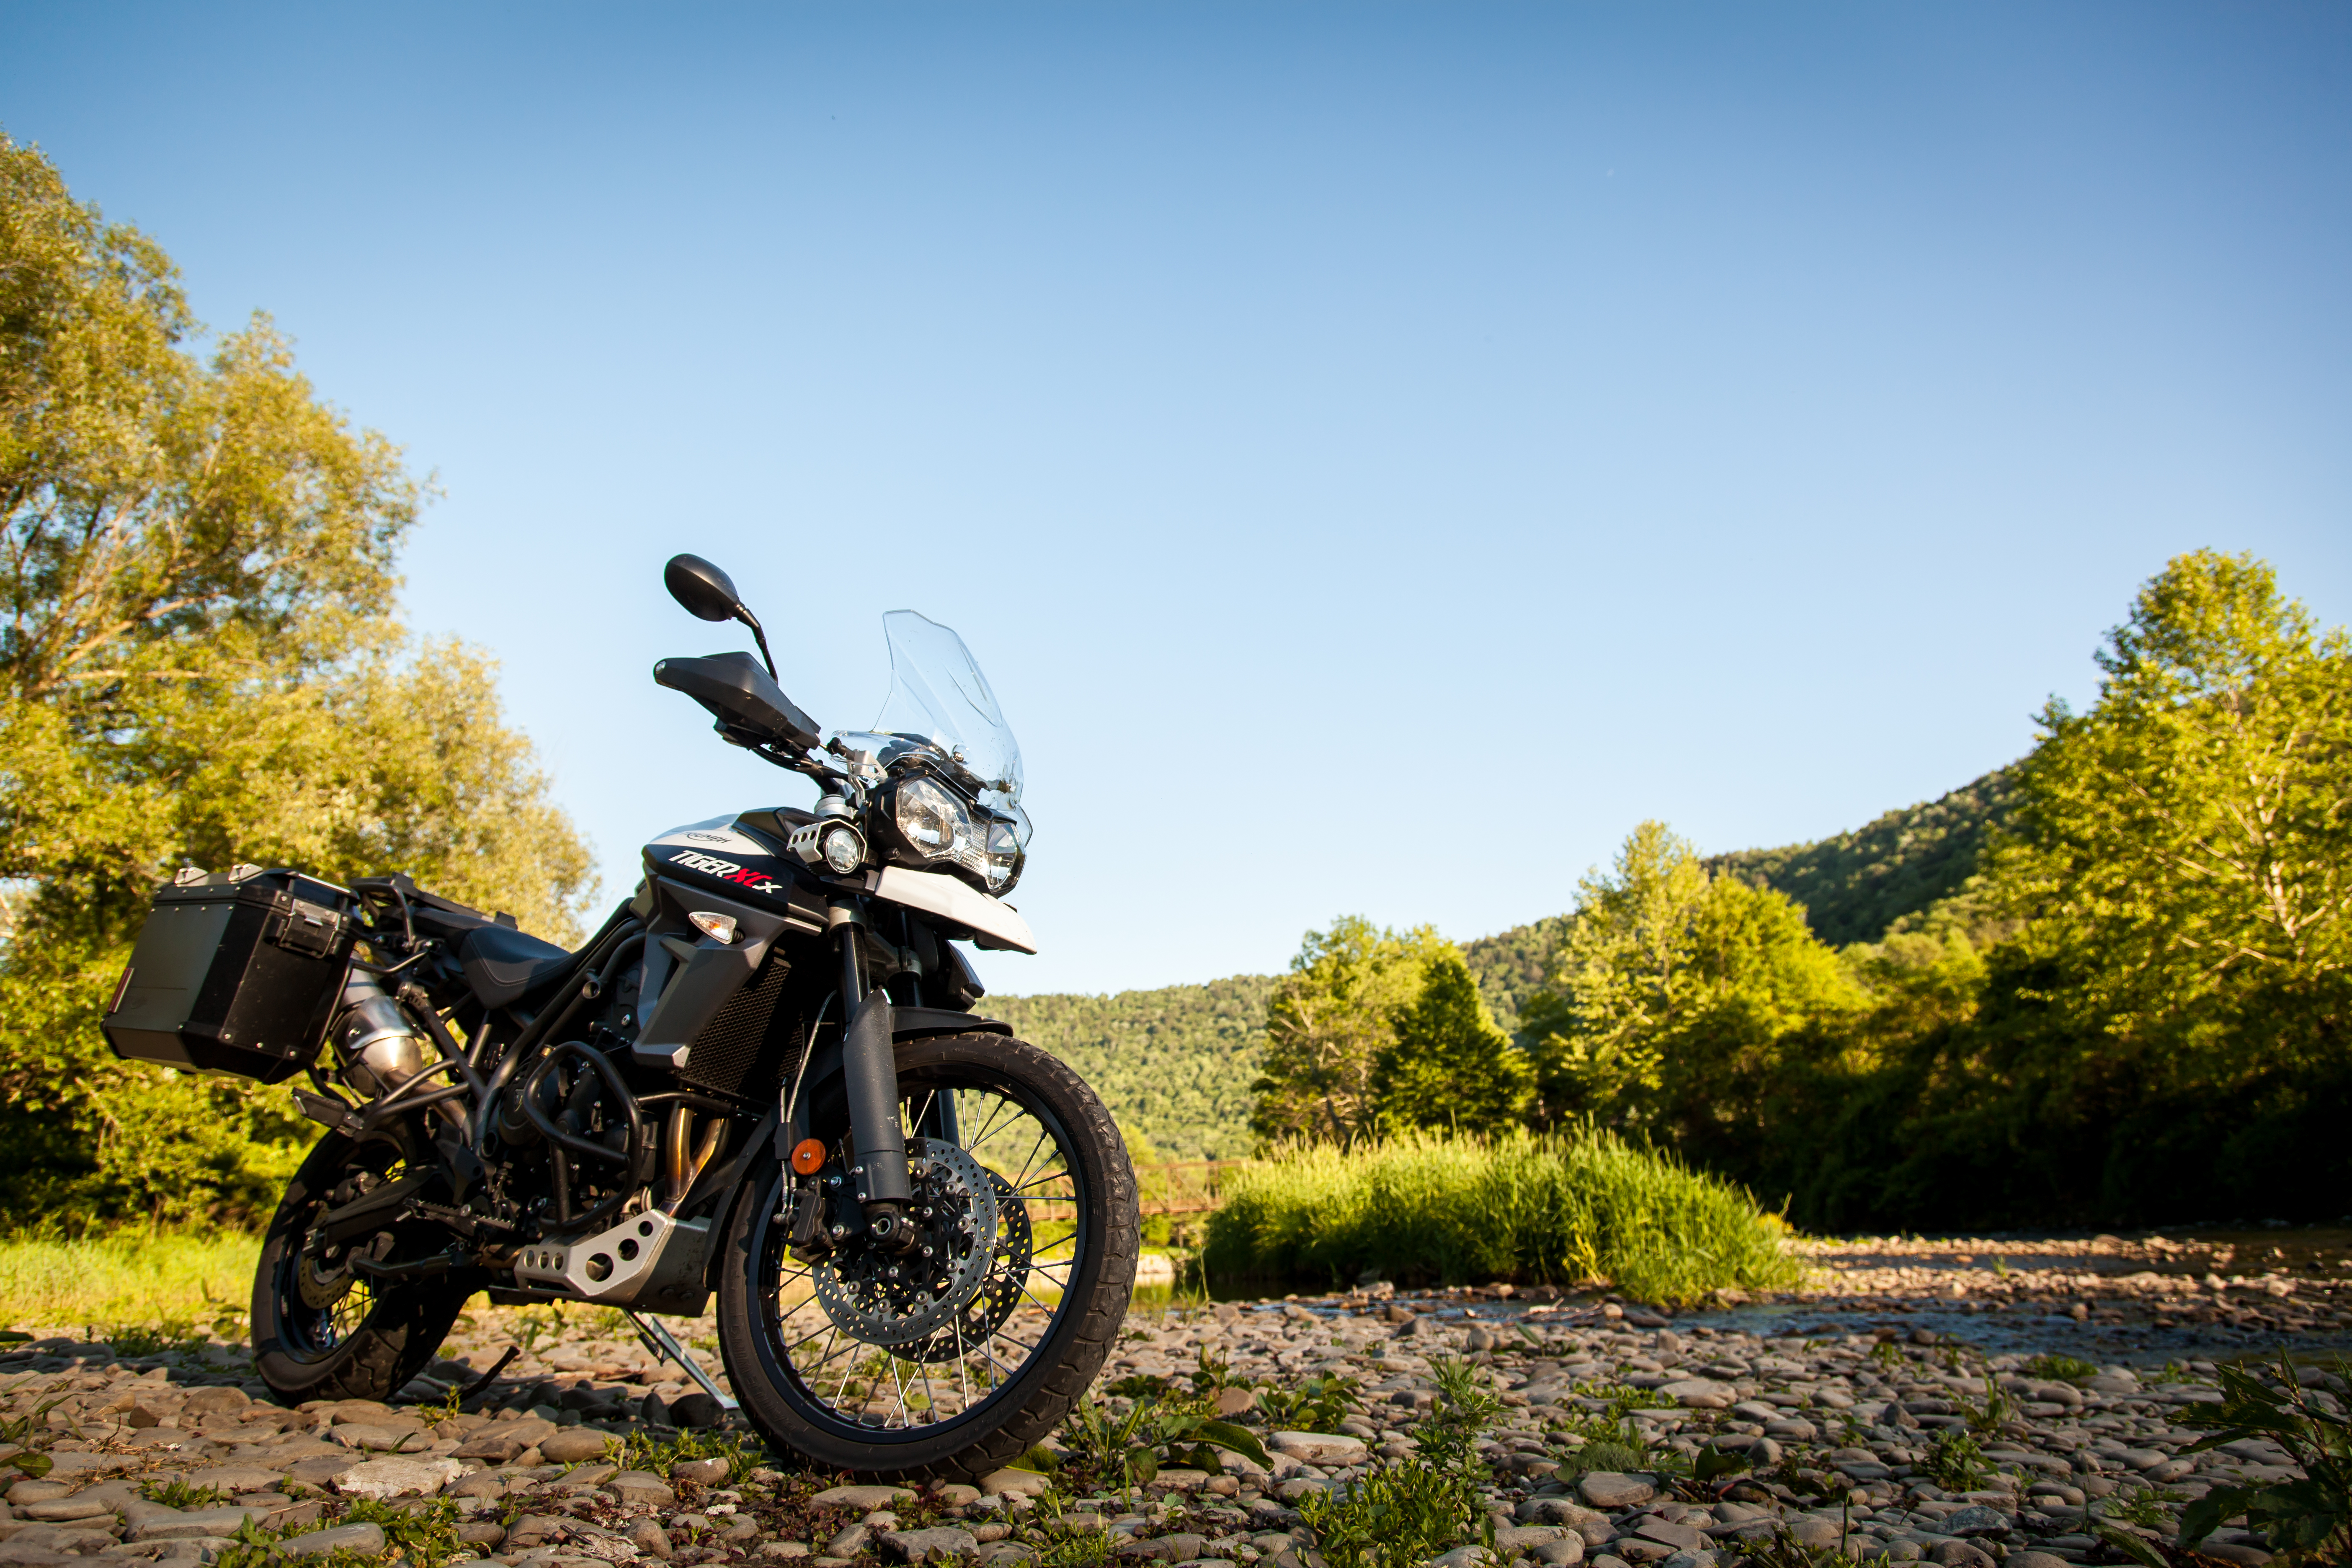 A year of the Tiger: Long-term abuse of a Triumph Tiger 800 XCx